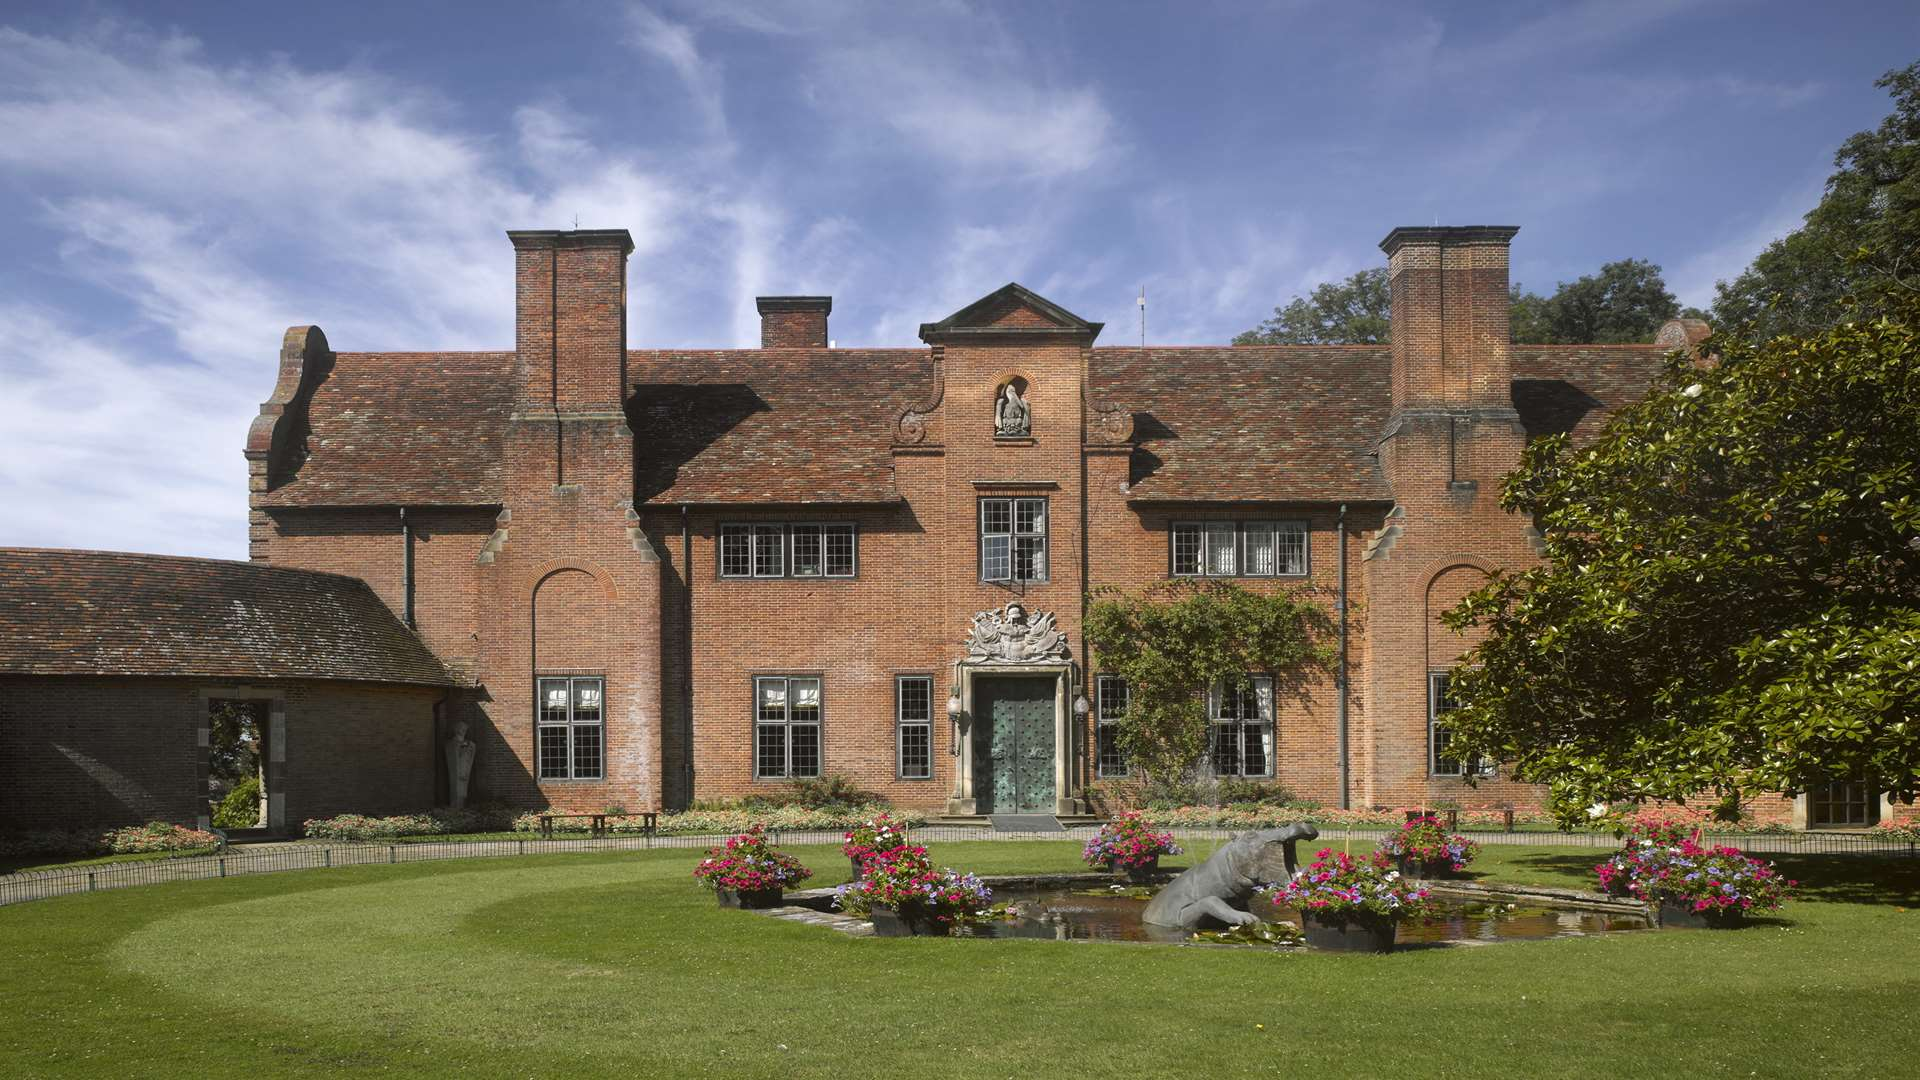 Port Lympne Mansion from the front